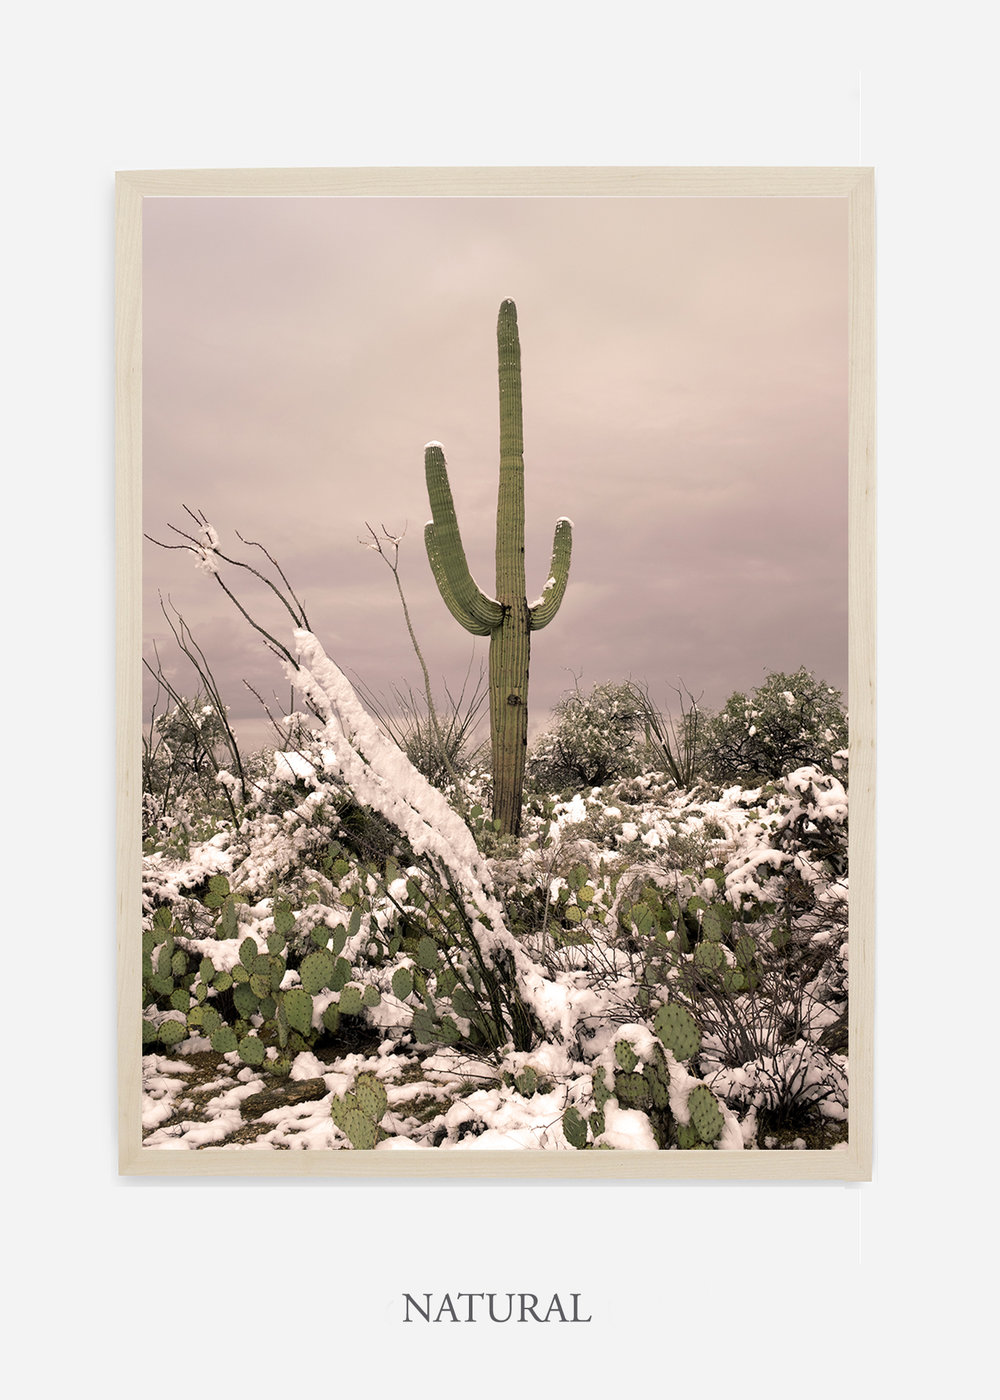 nomat-naturalframe-saguaroNo.4-wildercalifornia-art-wallart-cactusprint-homedecor-prints-arizona-botanical-artwork-interiordesign.jpg